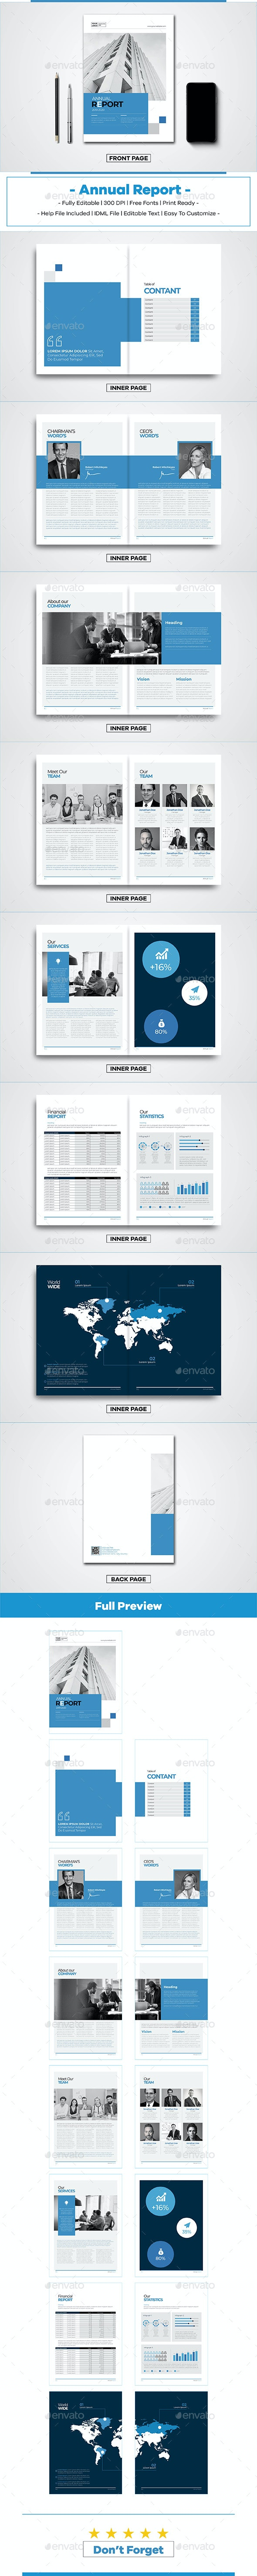 Annual Report - Stationery Print Templates